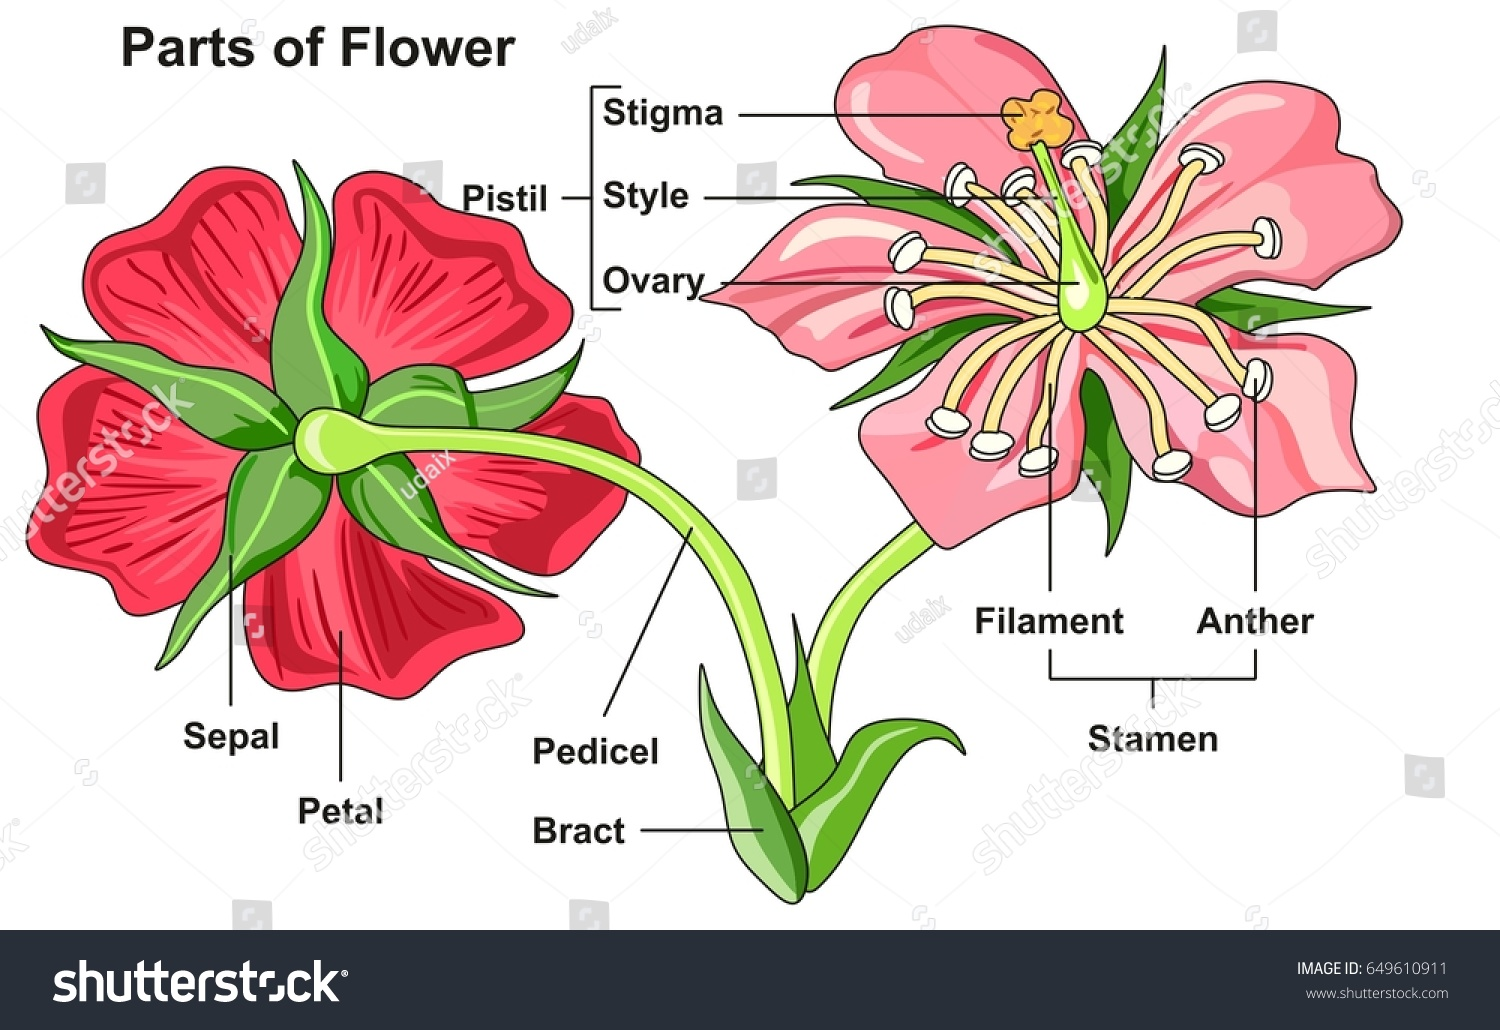 Flower parts diagram front back view stock illustration 649610911 flower parts diagram front and back view with all parts labeled useful for school education and ccuart Image collections